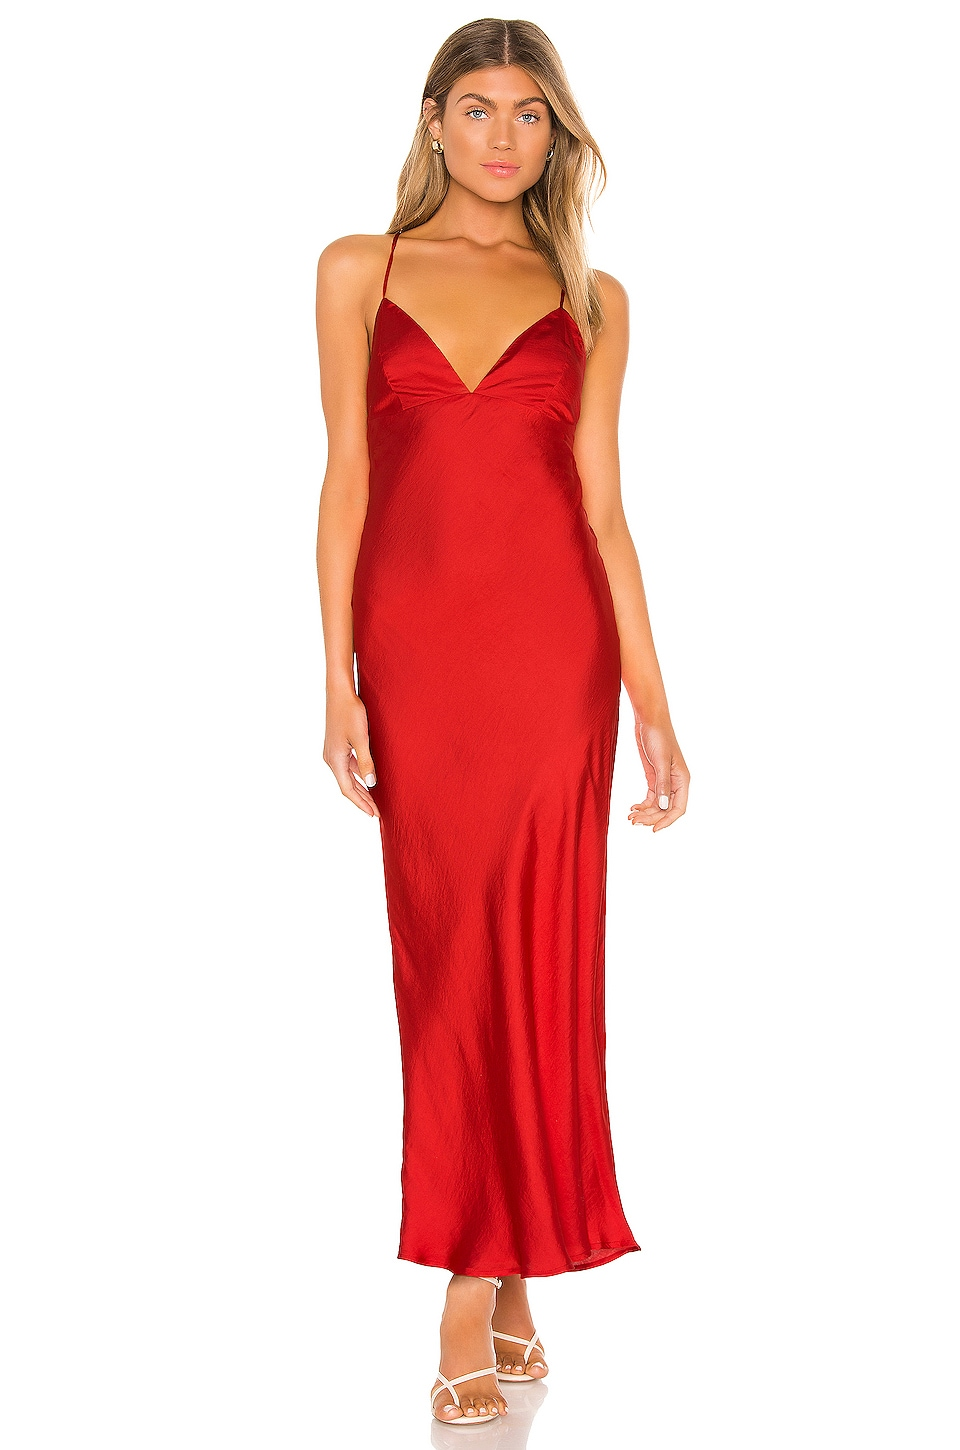 Bardot Jassie Slip Dress in Fire Red